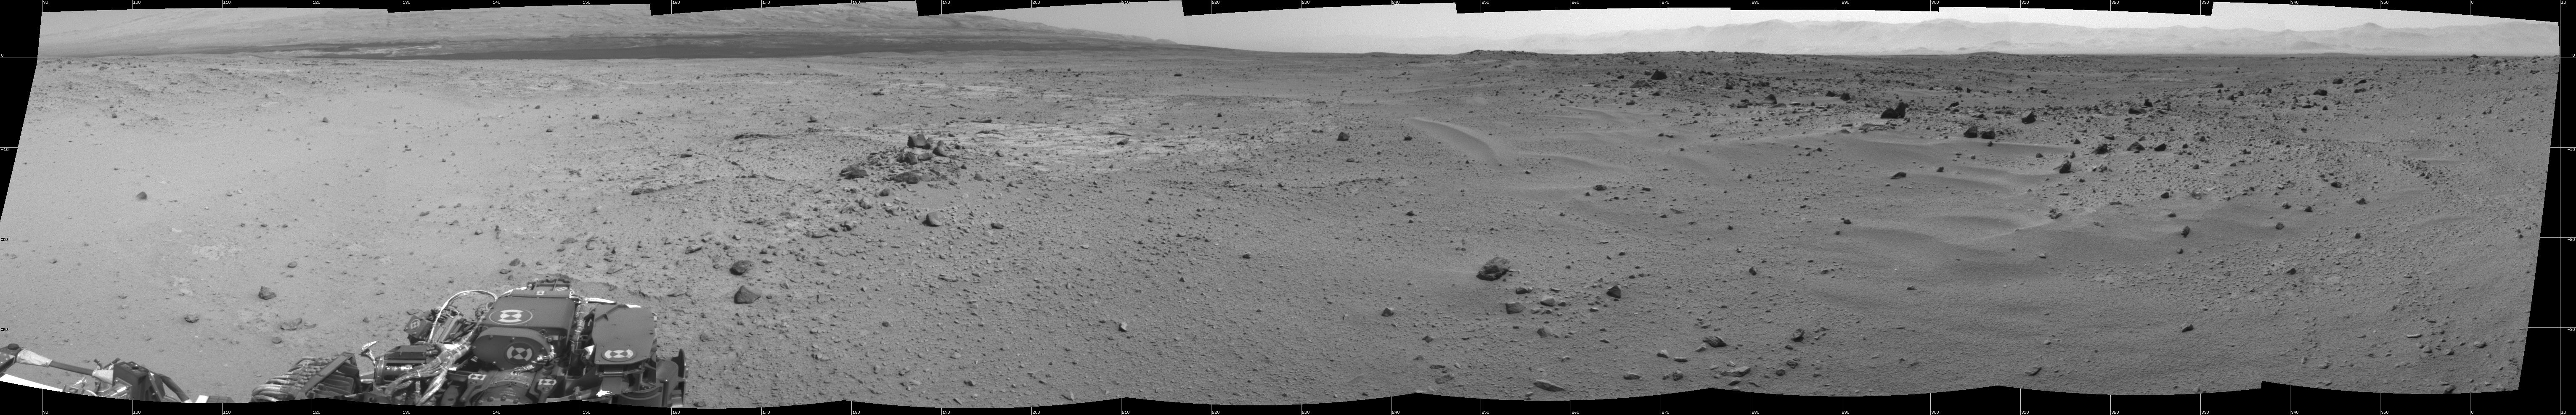 Curiosity Drives Solo for First Time